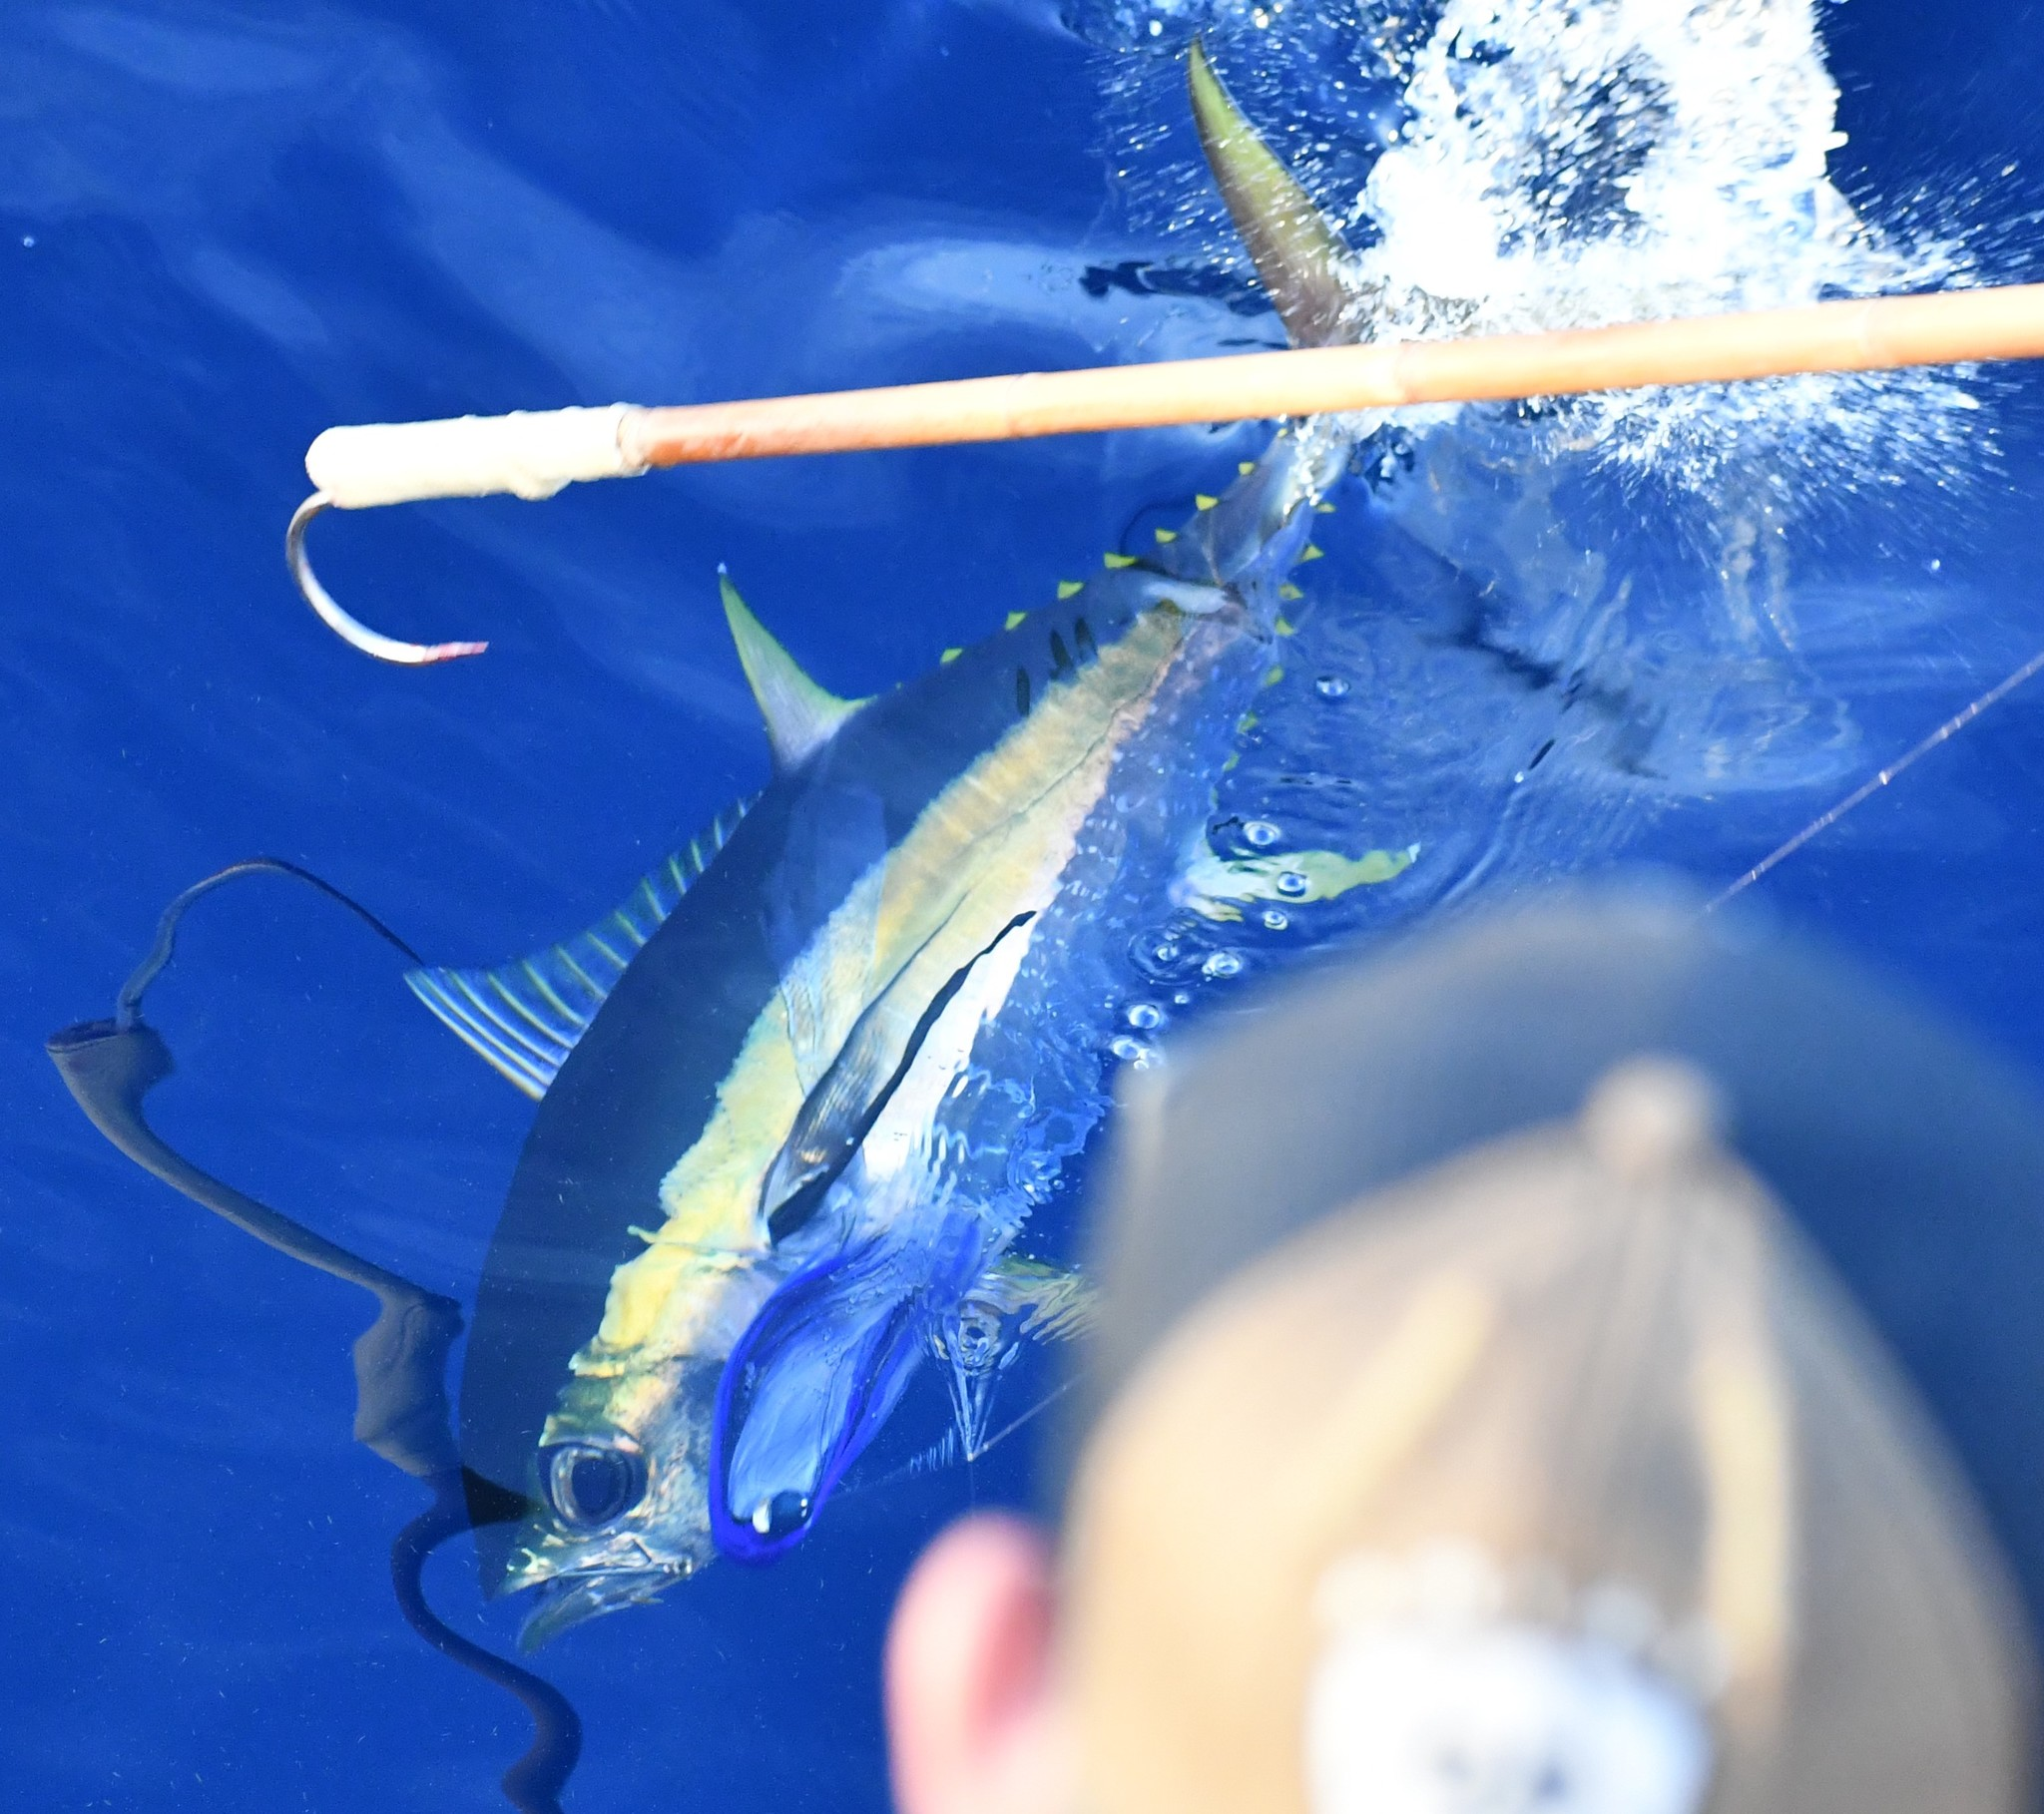 yellowfin tuna fighting a fishing line, a person's head and a gaffing hook is in view